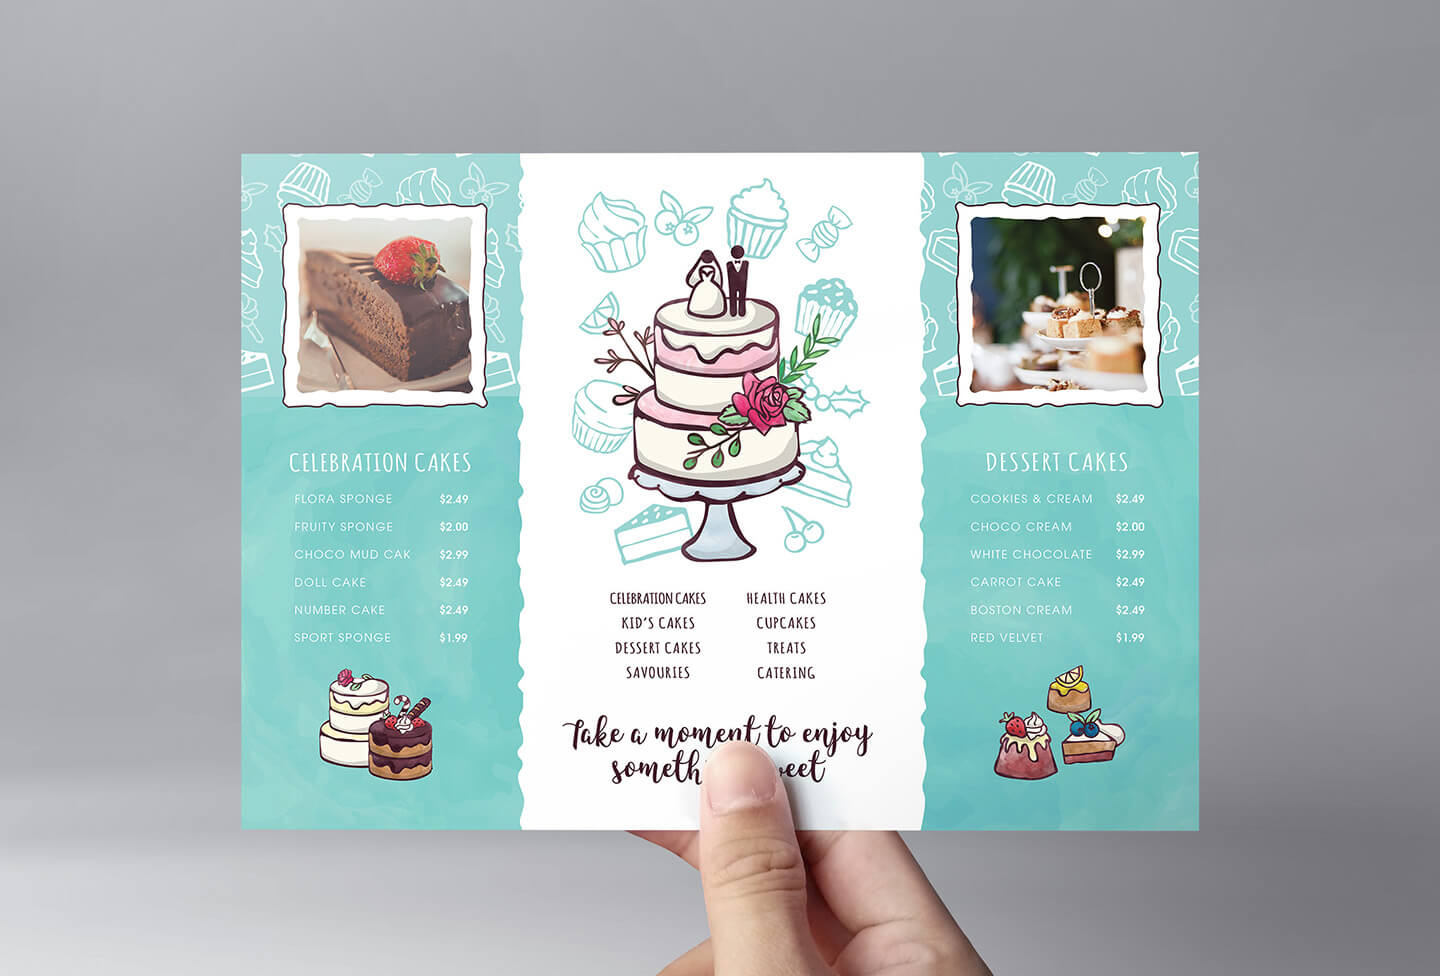 Cake Shop Flyer Template In Psd, Ai & Vector – Brandpacks In Cake Flyer Template Free